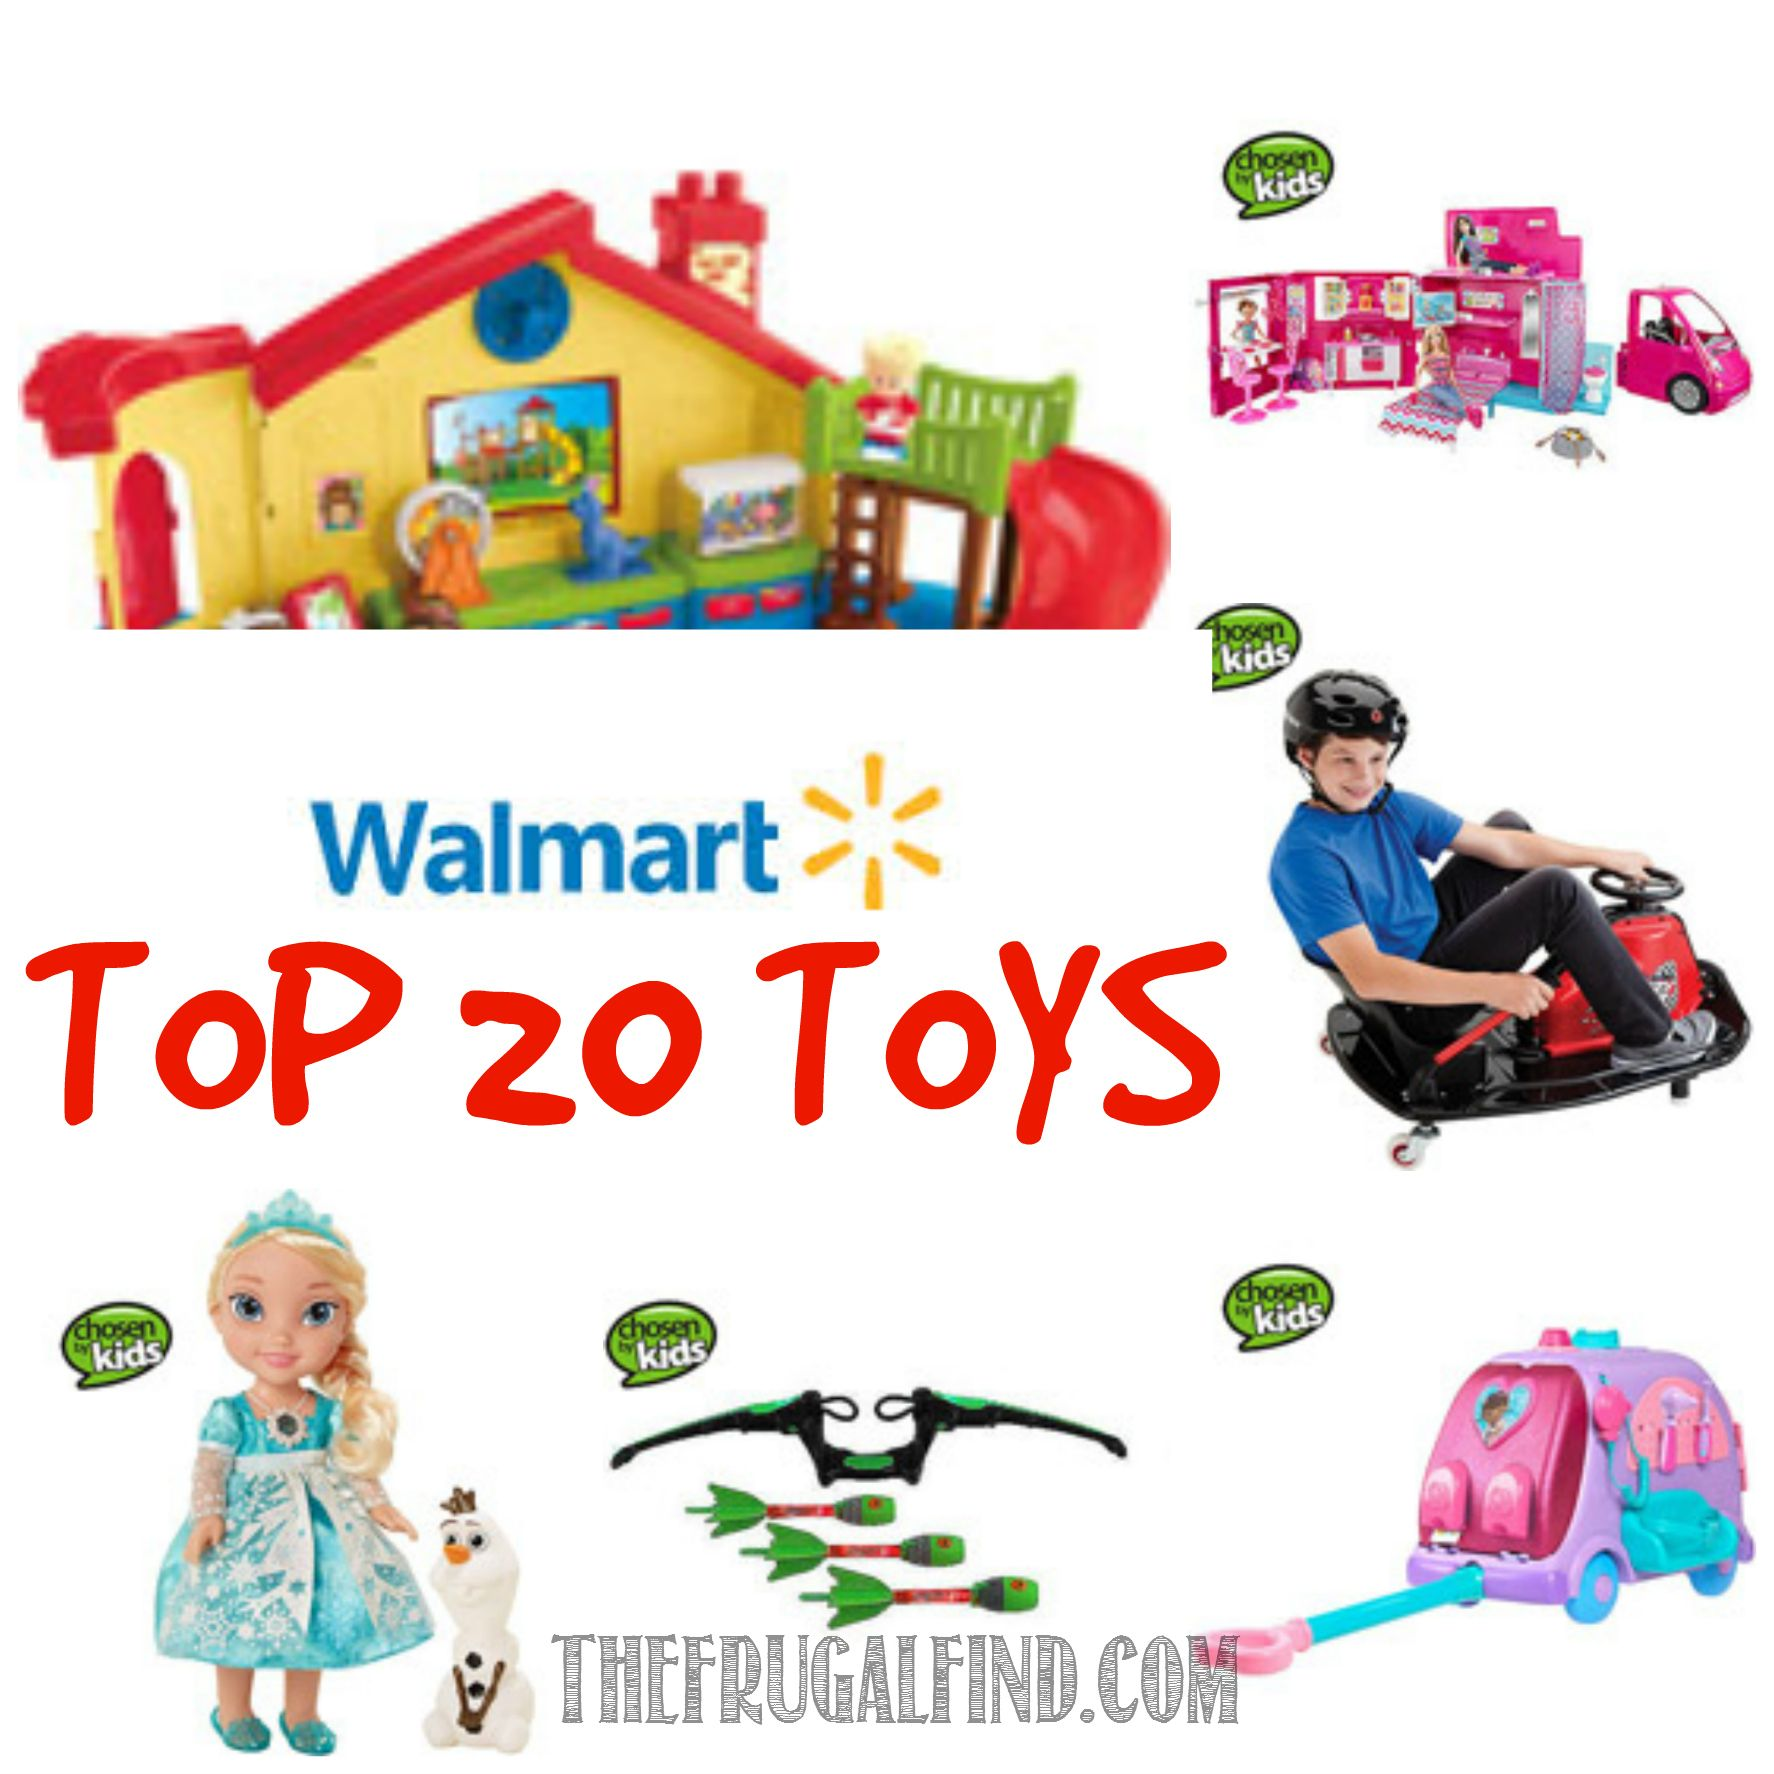 top 20 toys at walmart - Walmart Toys For Christmas